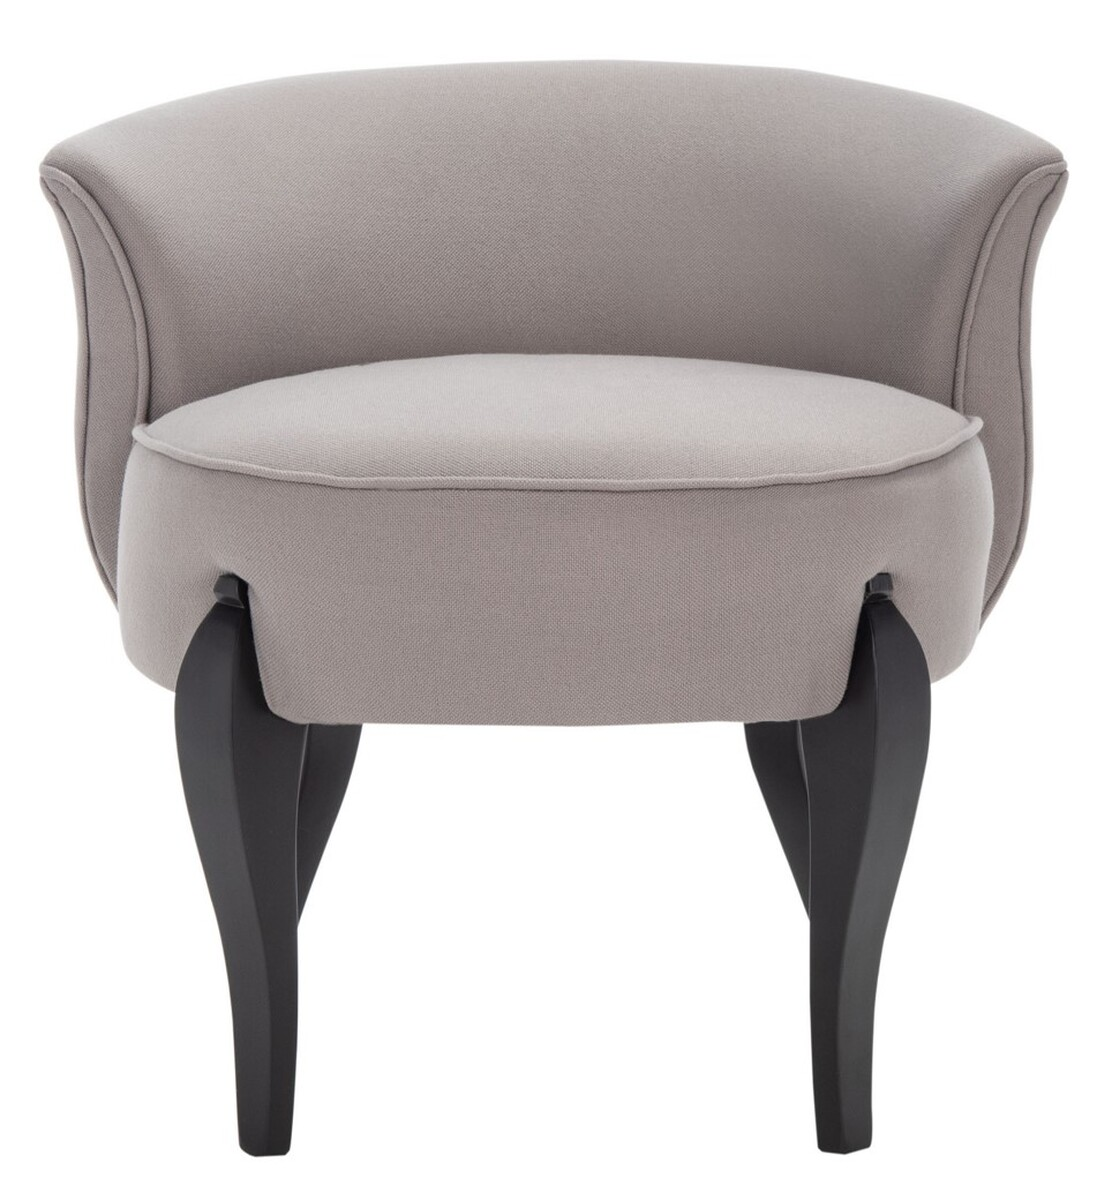 MORA FRENCH LEG LINEN VANITY CHAIR Item: MCR4692B Color: Sea Mist